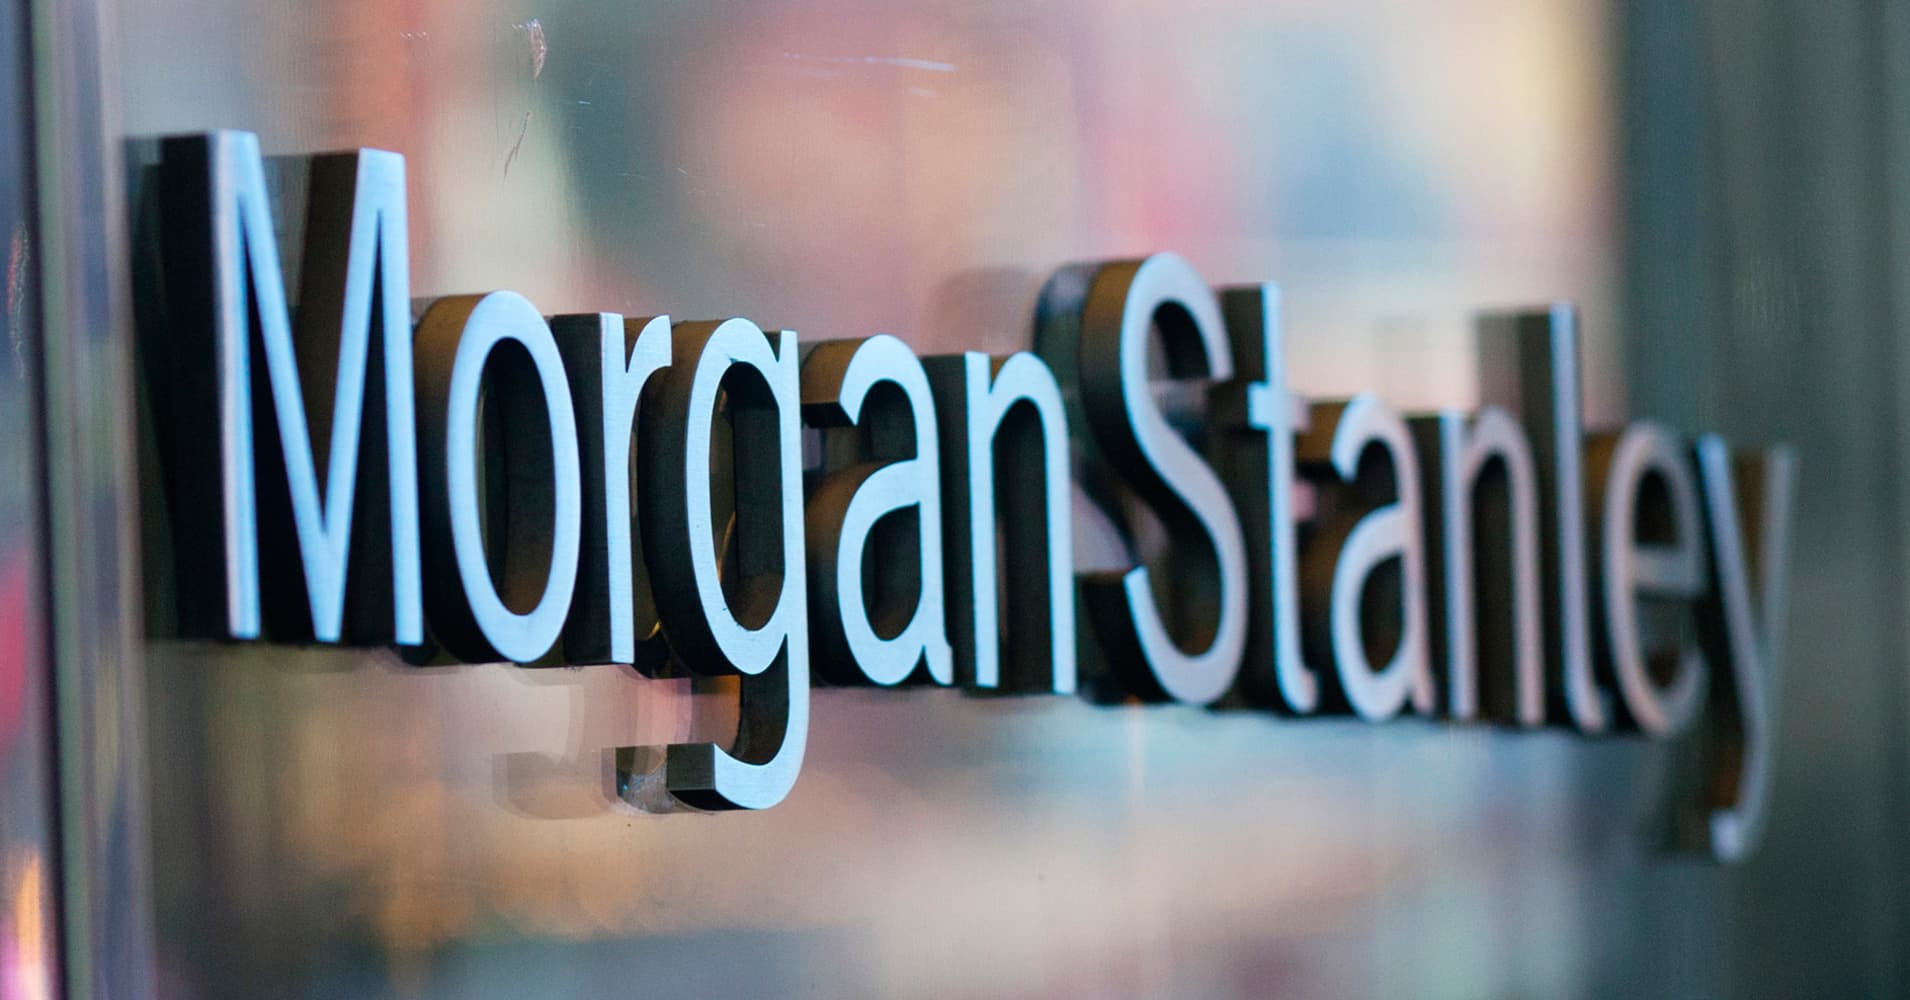 Morgan Stanley Plans To Cut 1 600 Jobs Source